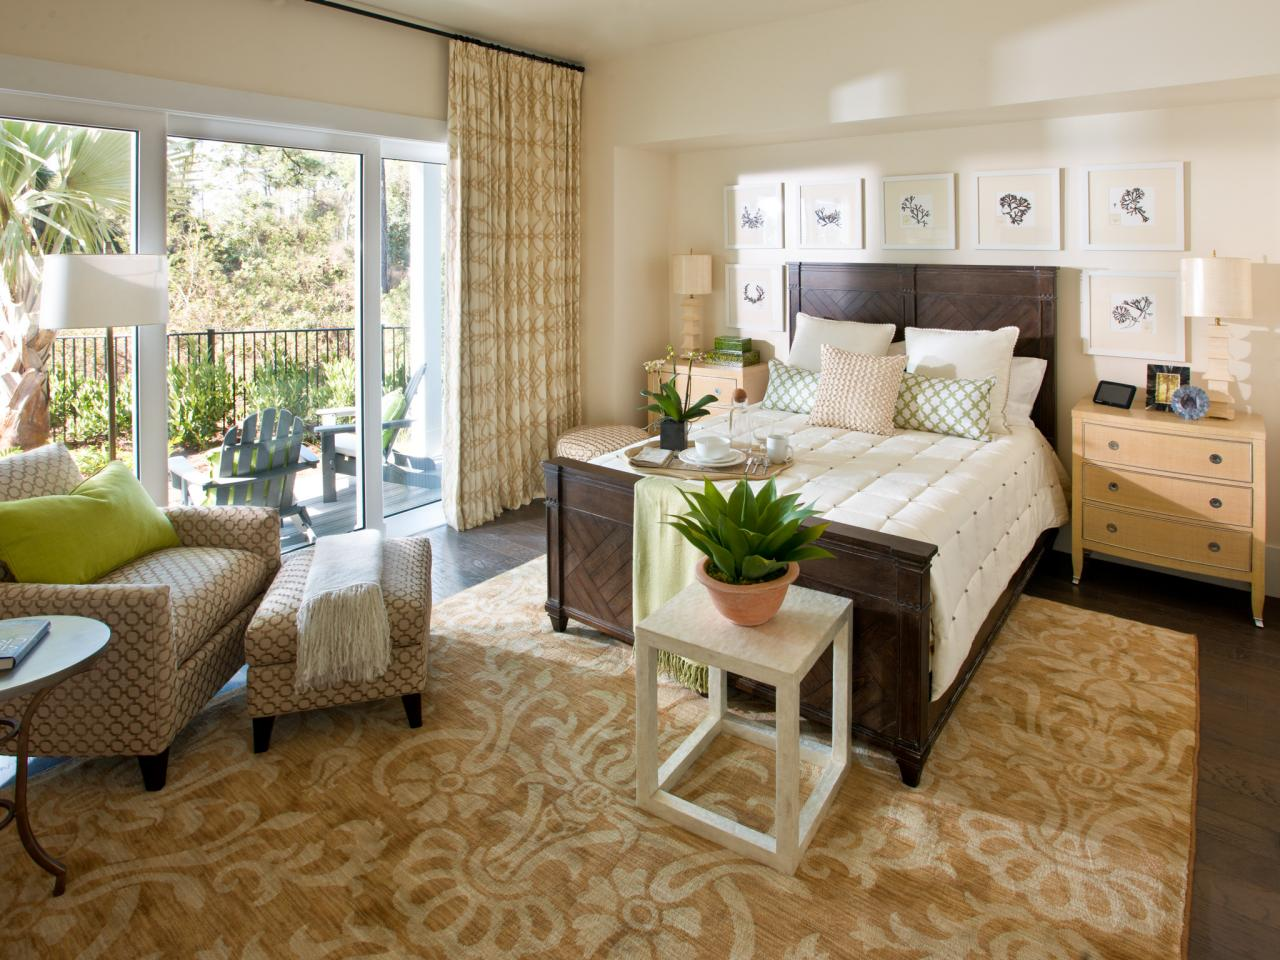 Hgtv smart home 2013 master bedroom pictures hgtv smart home 2013 hgtv - Airy brown and cream living room designs inspired from outdoor colors ...